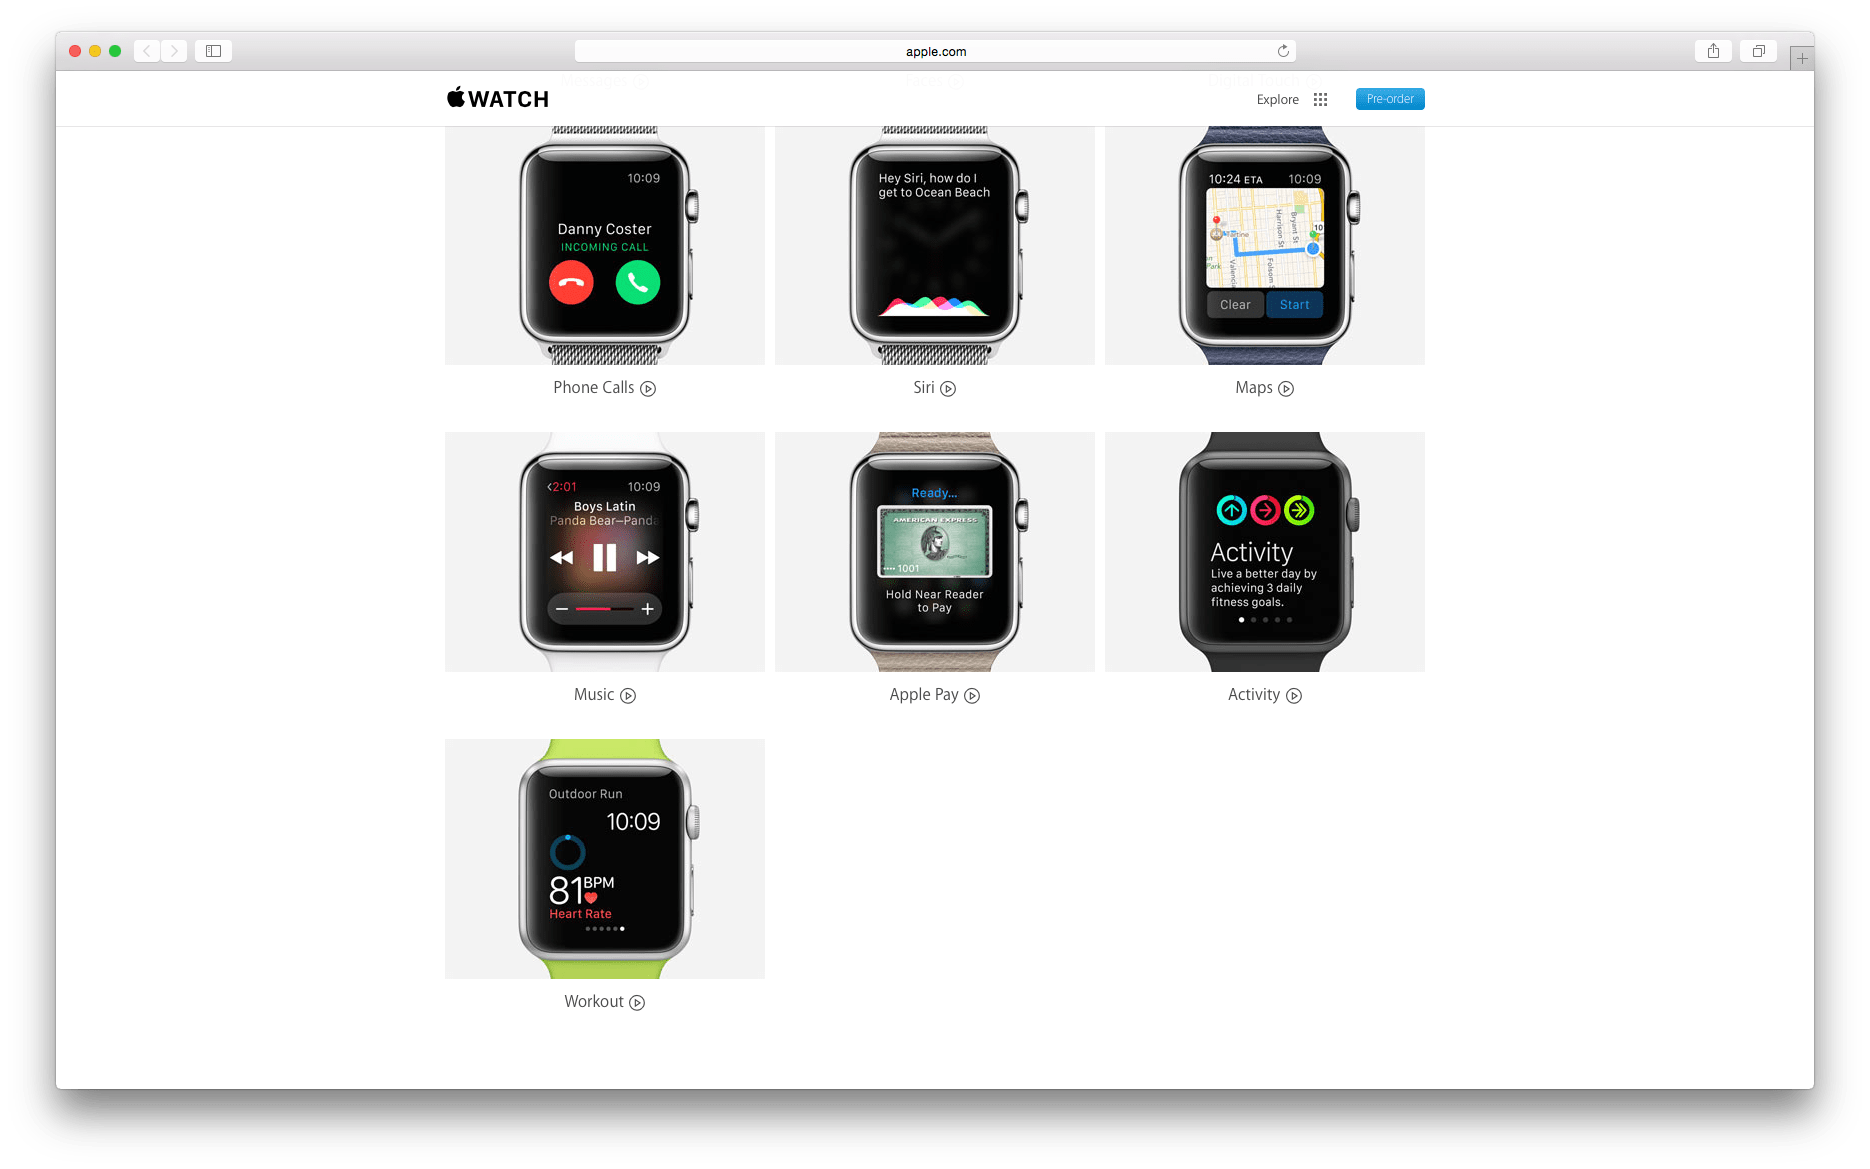 Apple posts Apple Watch guided tour videos for Apple Pay